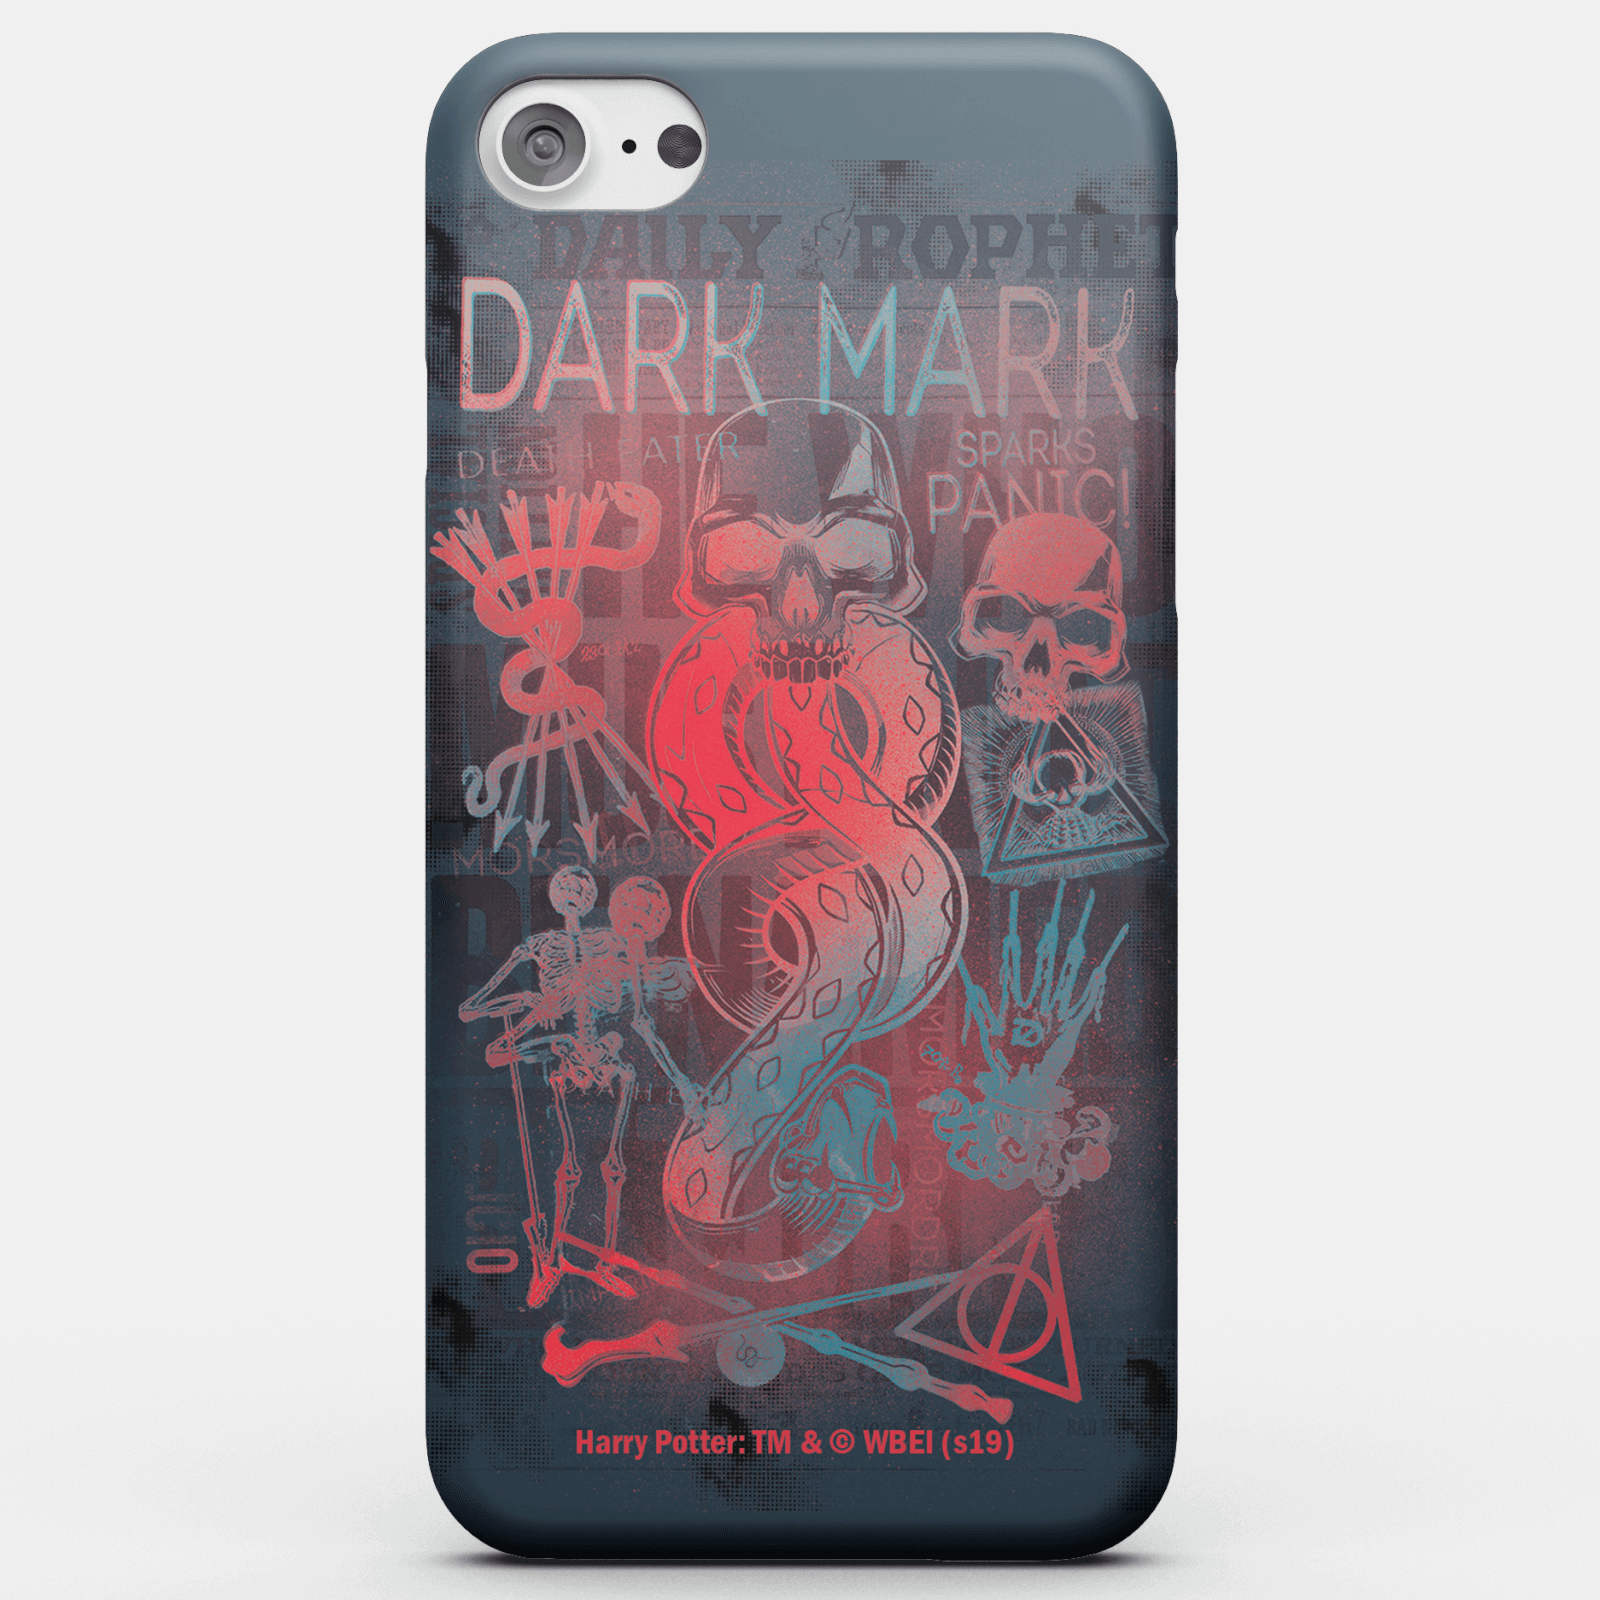 Funda Móvil Harry Potter Dark Mark para iPhone y Android - iPhone 7 Plus - Carcasa doble capa - Mate de Harry Potter